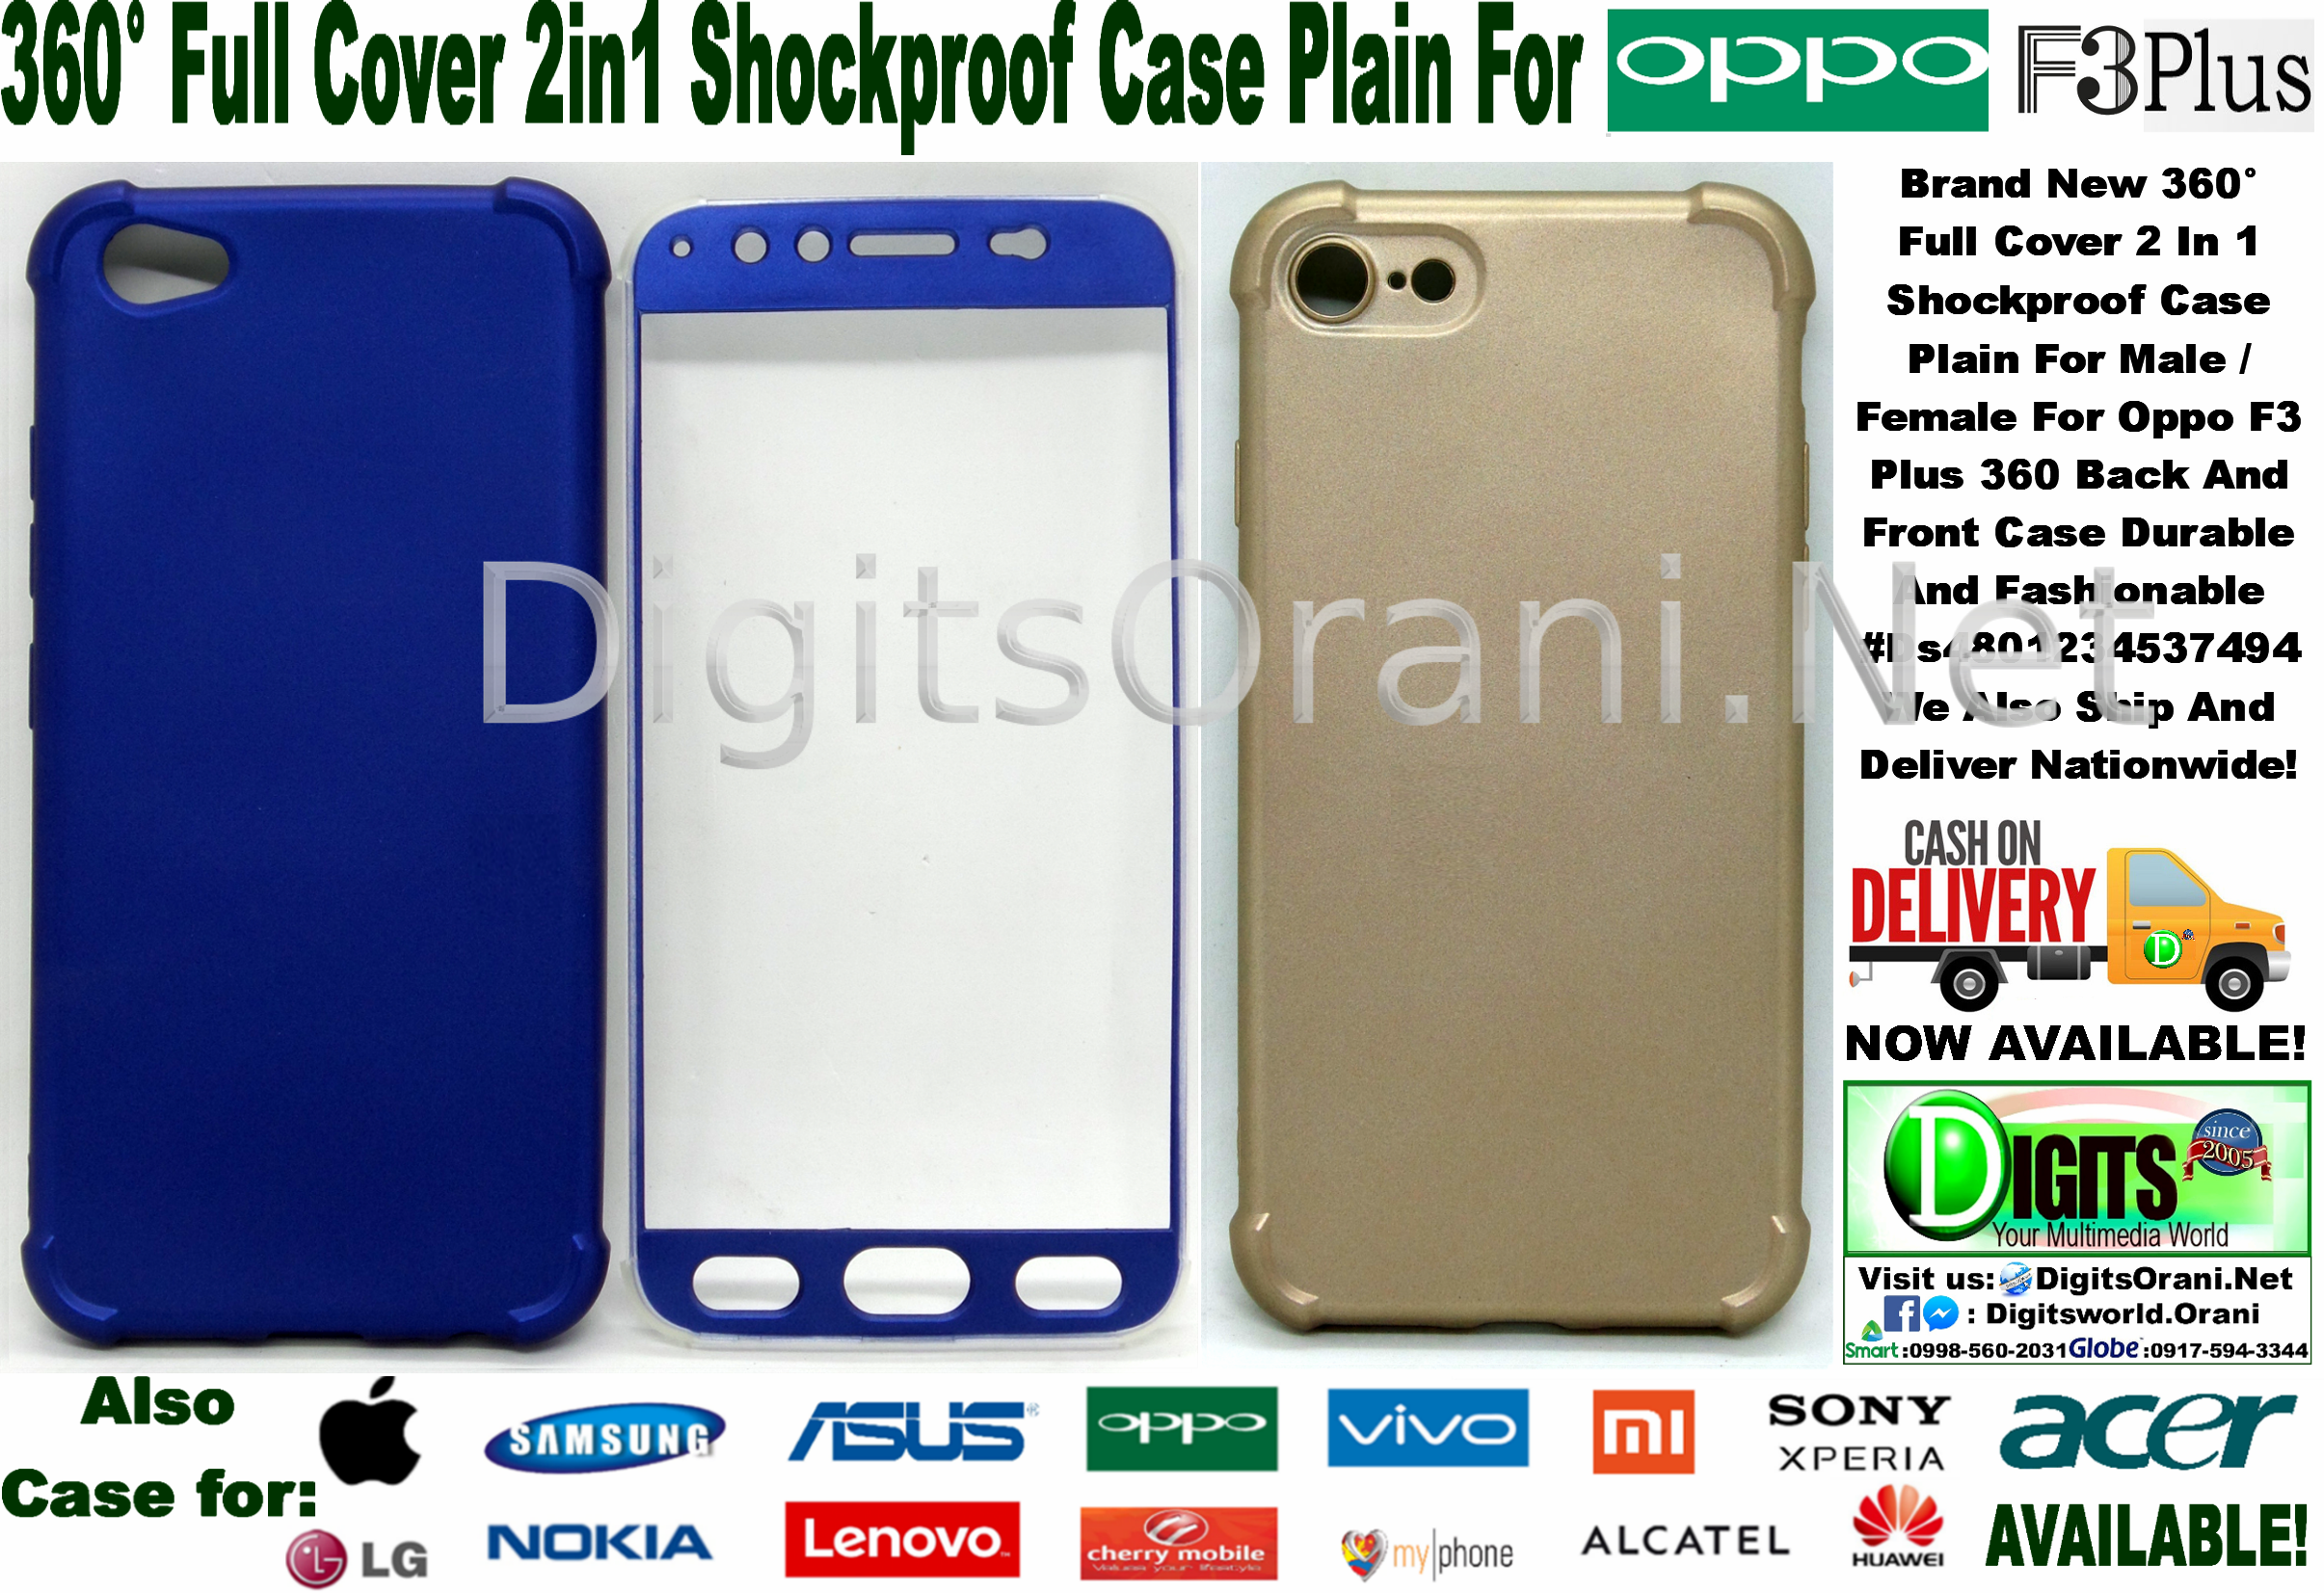 360 Full Cover 2 In 1 Shockproof Case Plain For Male Female Oppo F3 Launched India